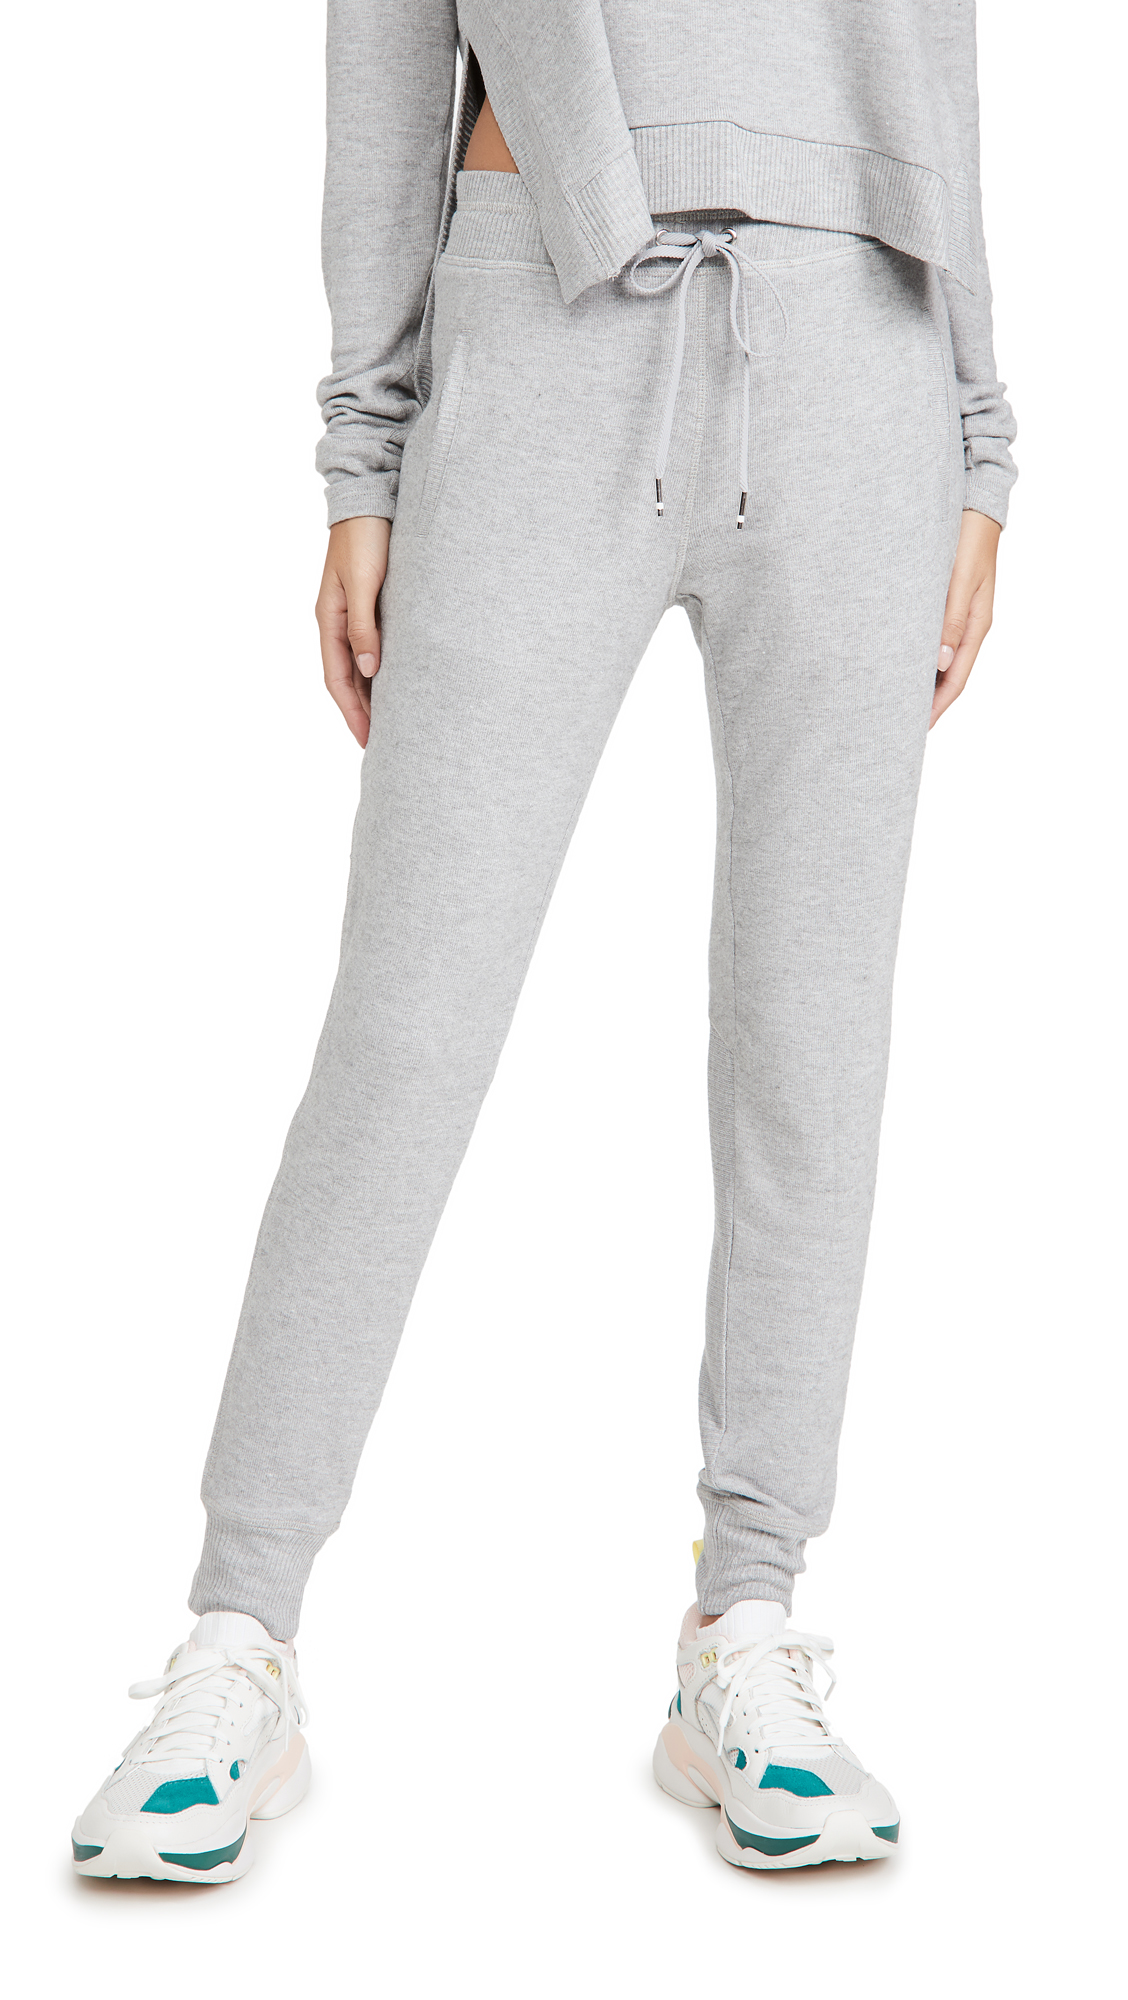 ALALA Wander Sweatpants